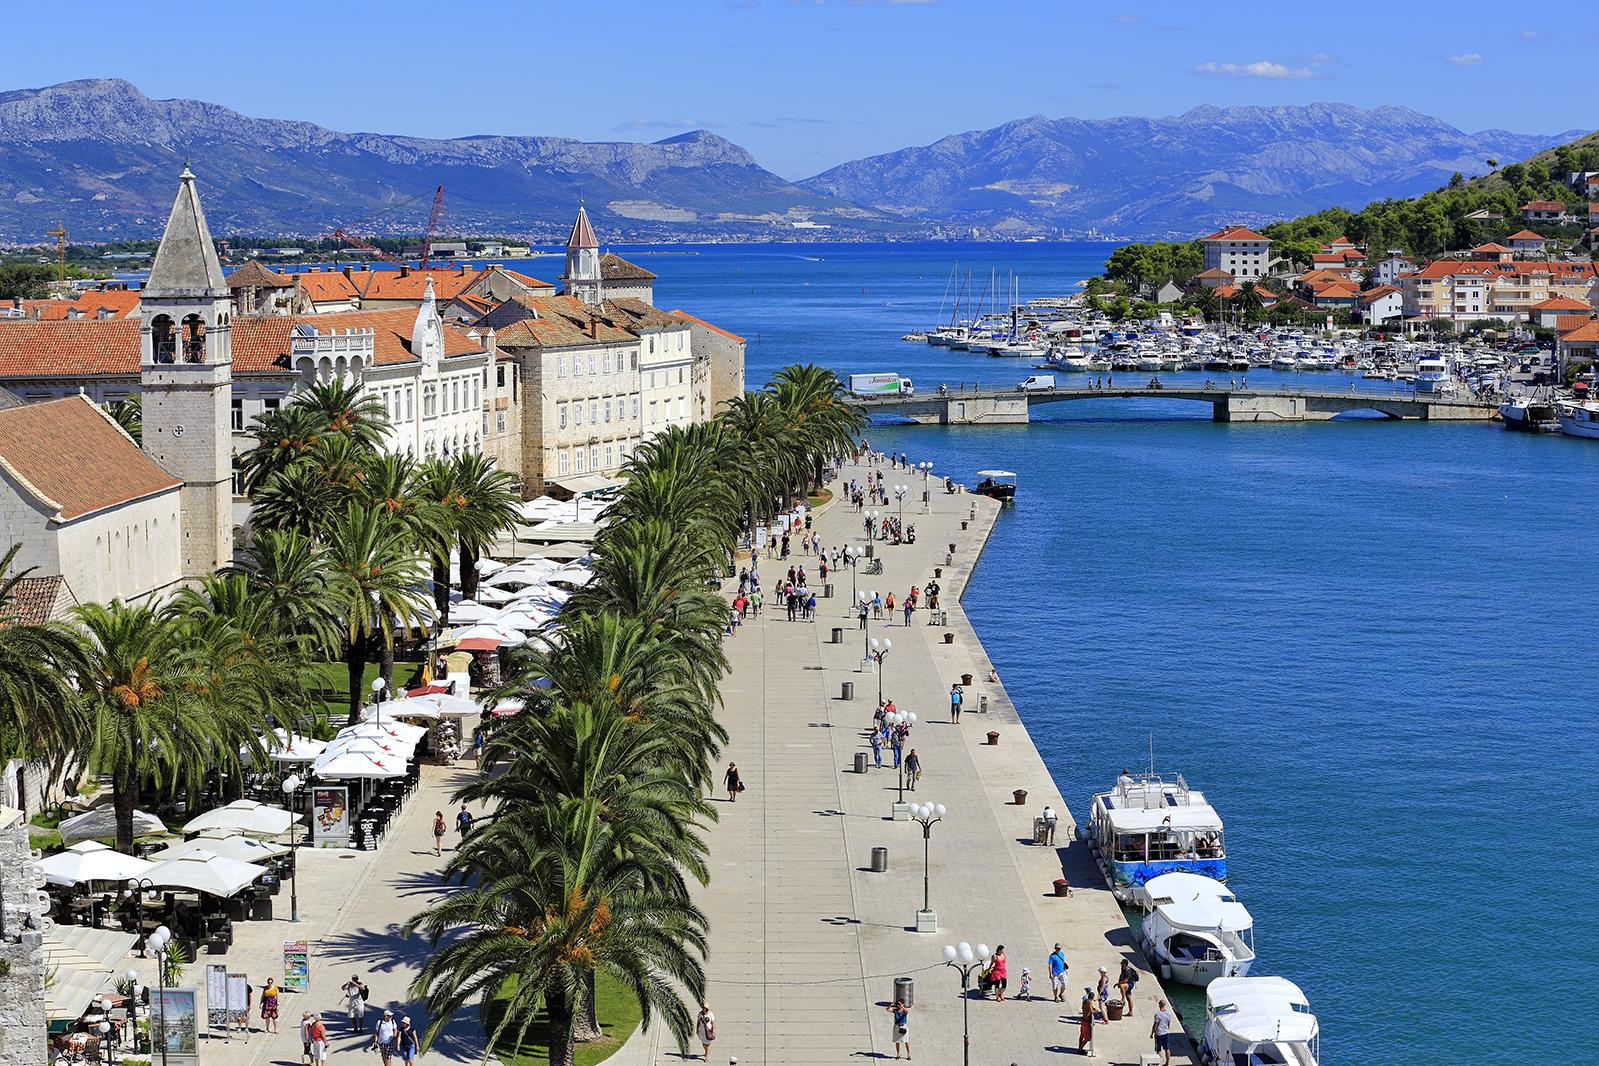 City of Trogir Croatia: small town rich with history